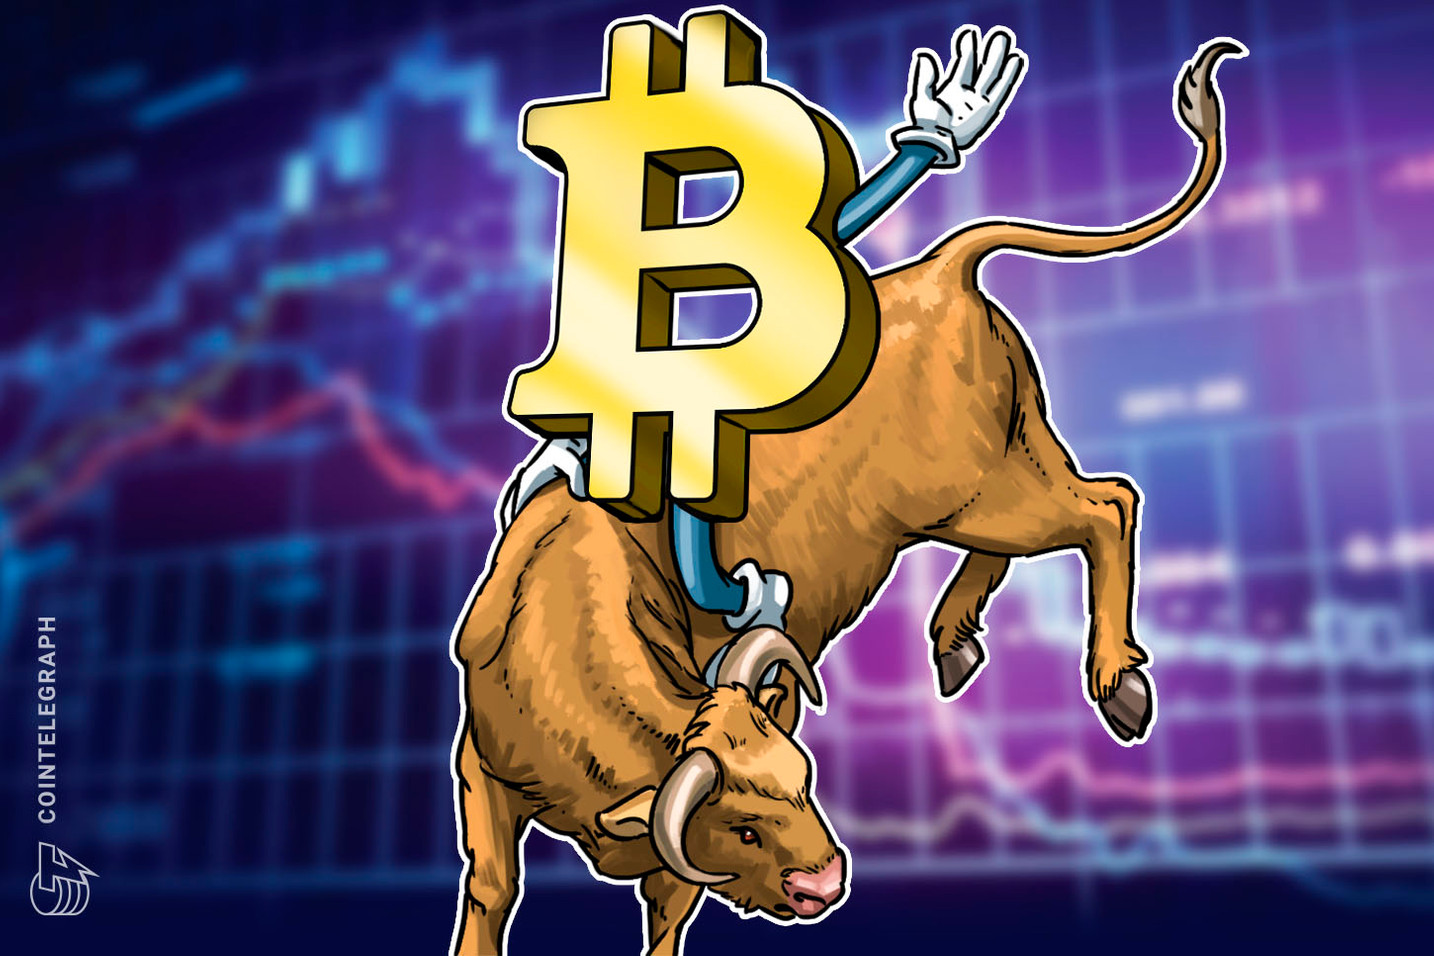 Bitcoin Price Chart Nears Bullish Cross That Last Time Preceded $10K